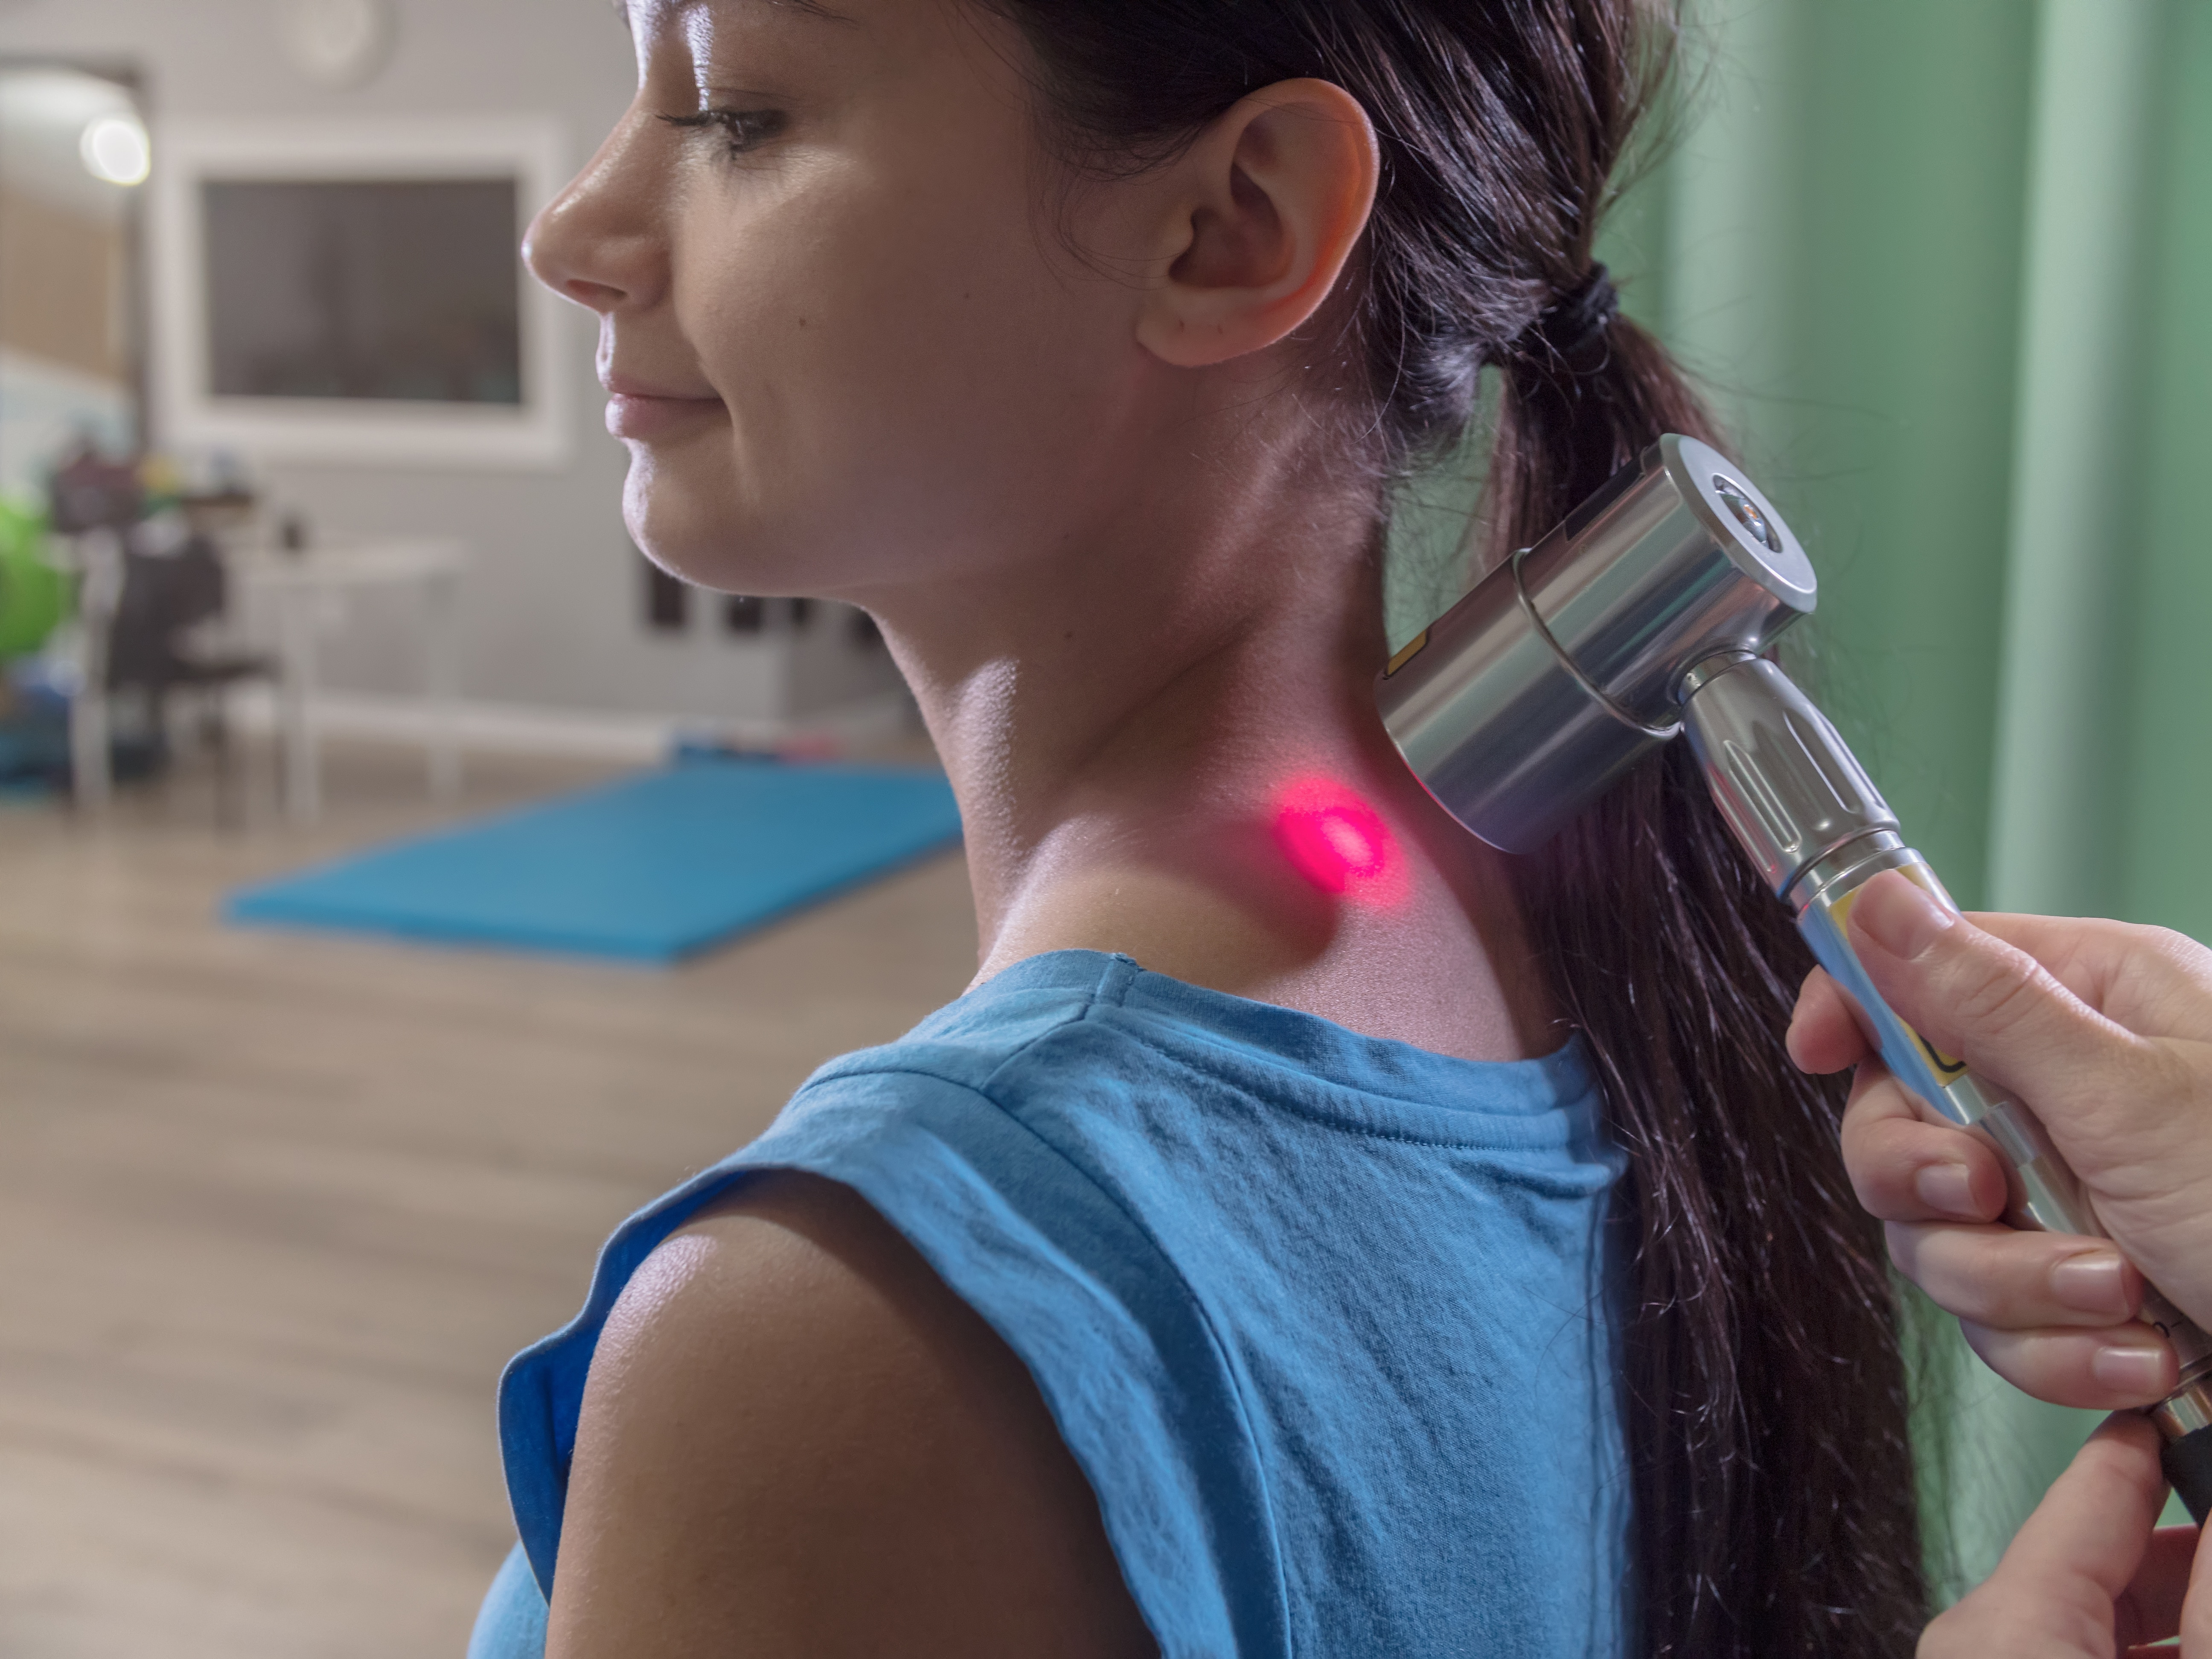 Dr Oda laser therapy